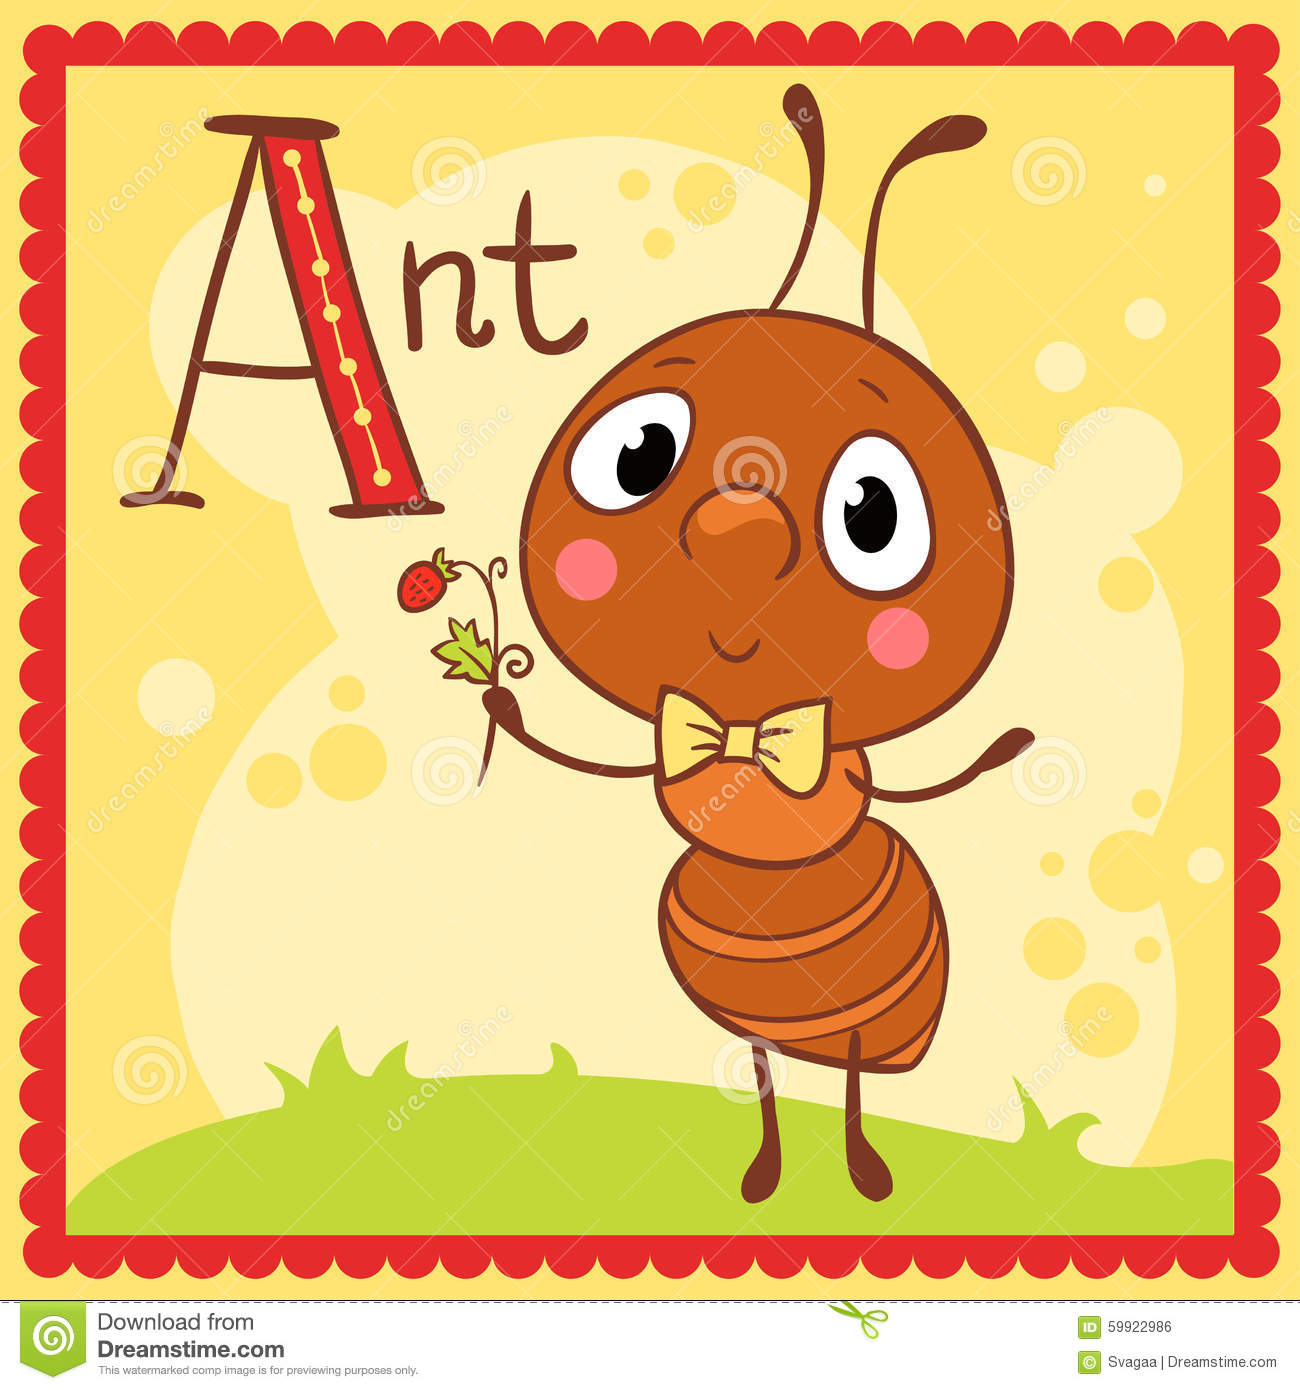 Illustrated Alphabet Letter A And Ant Cartoon Vector